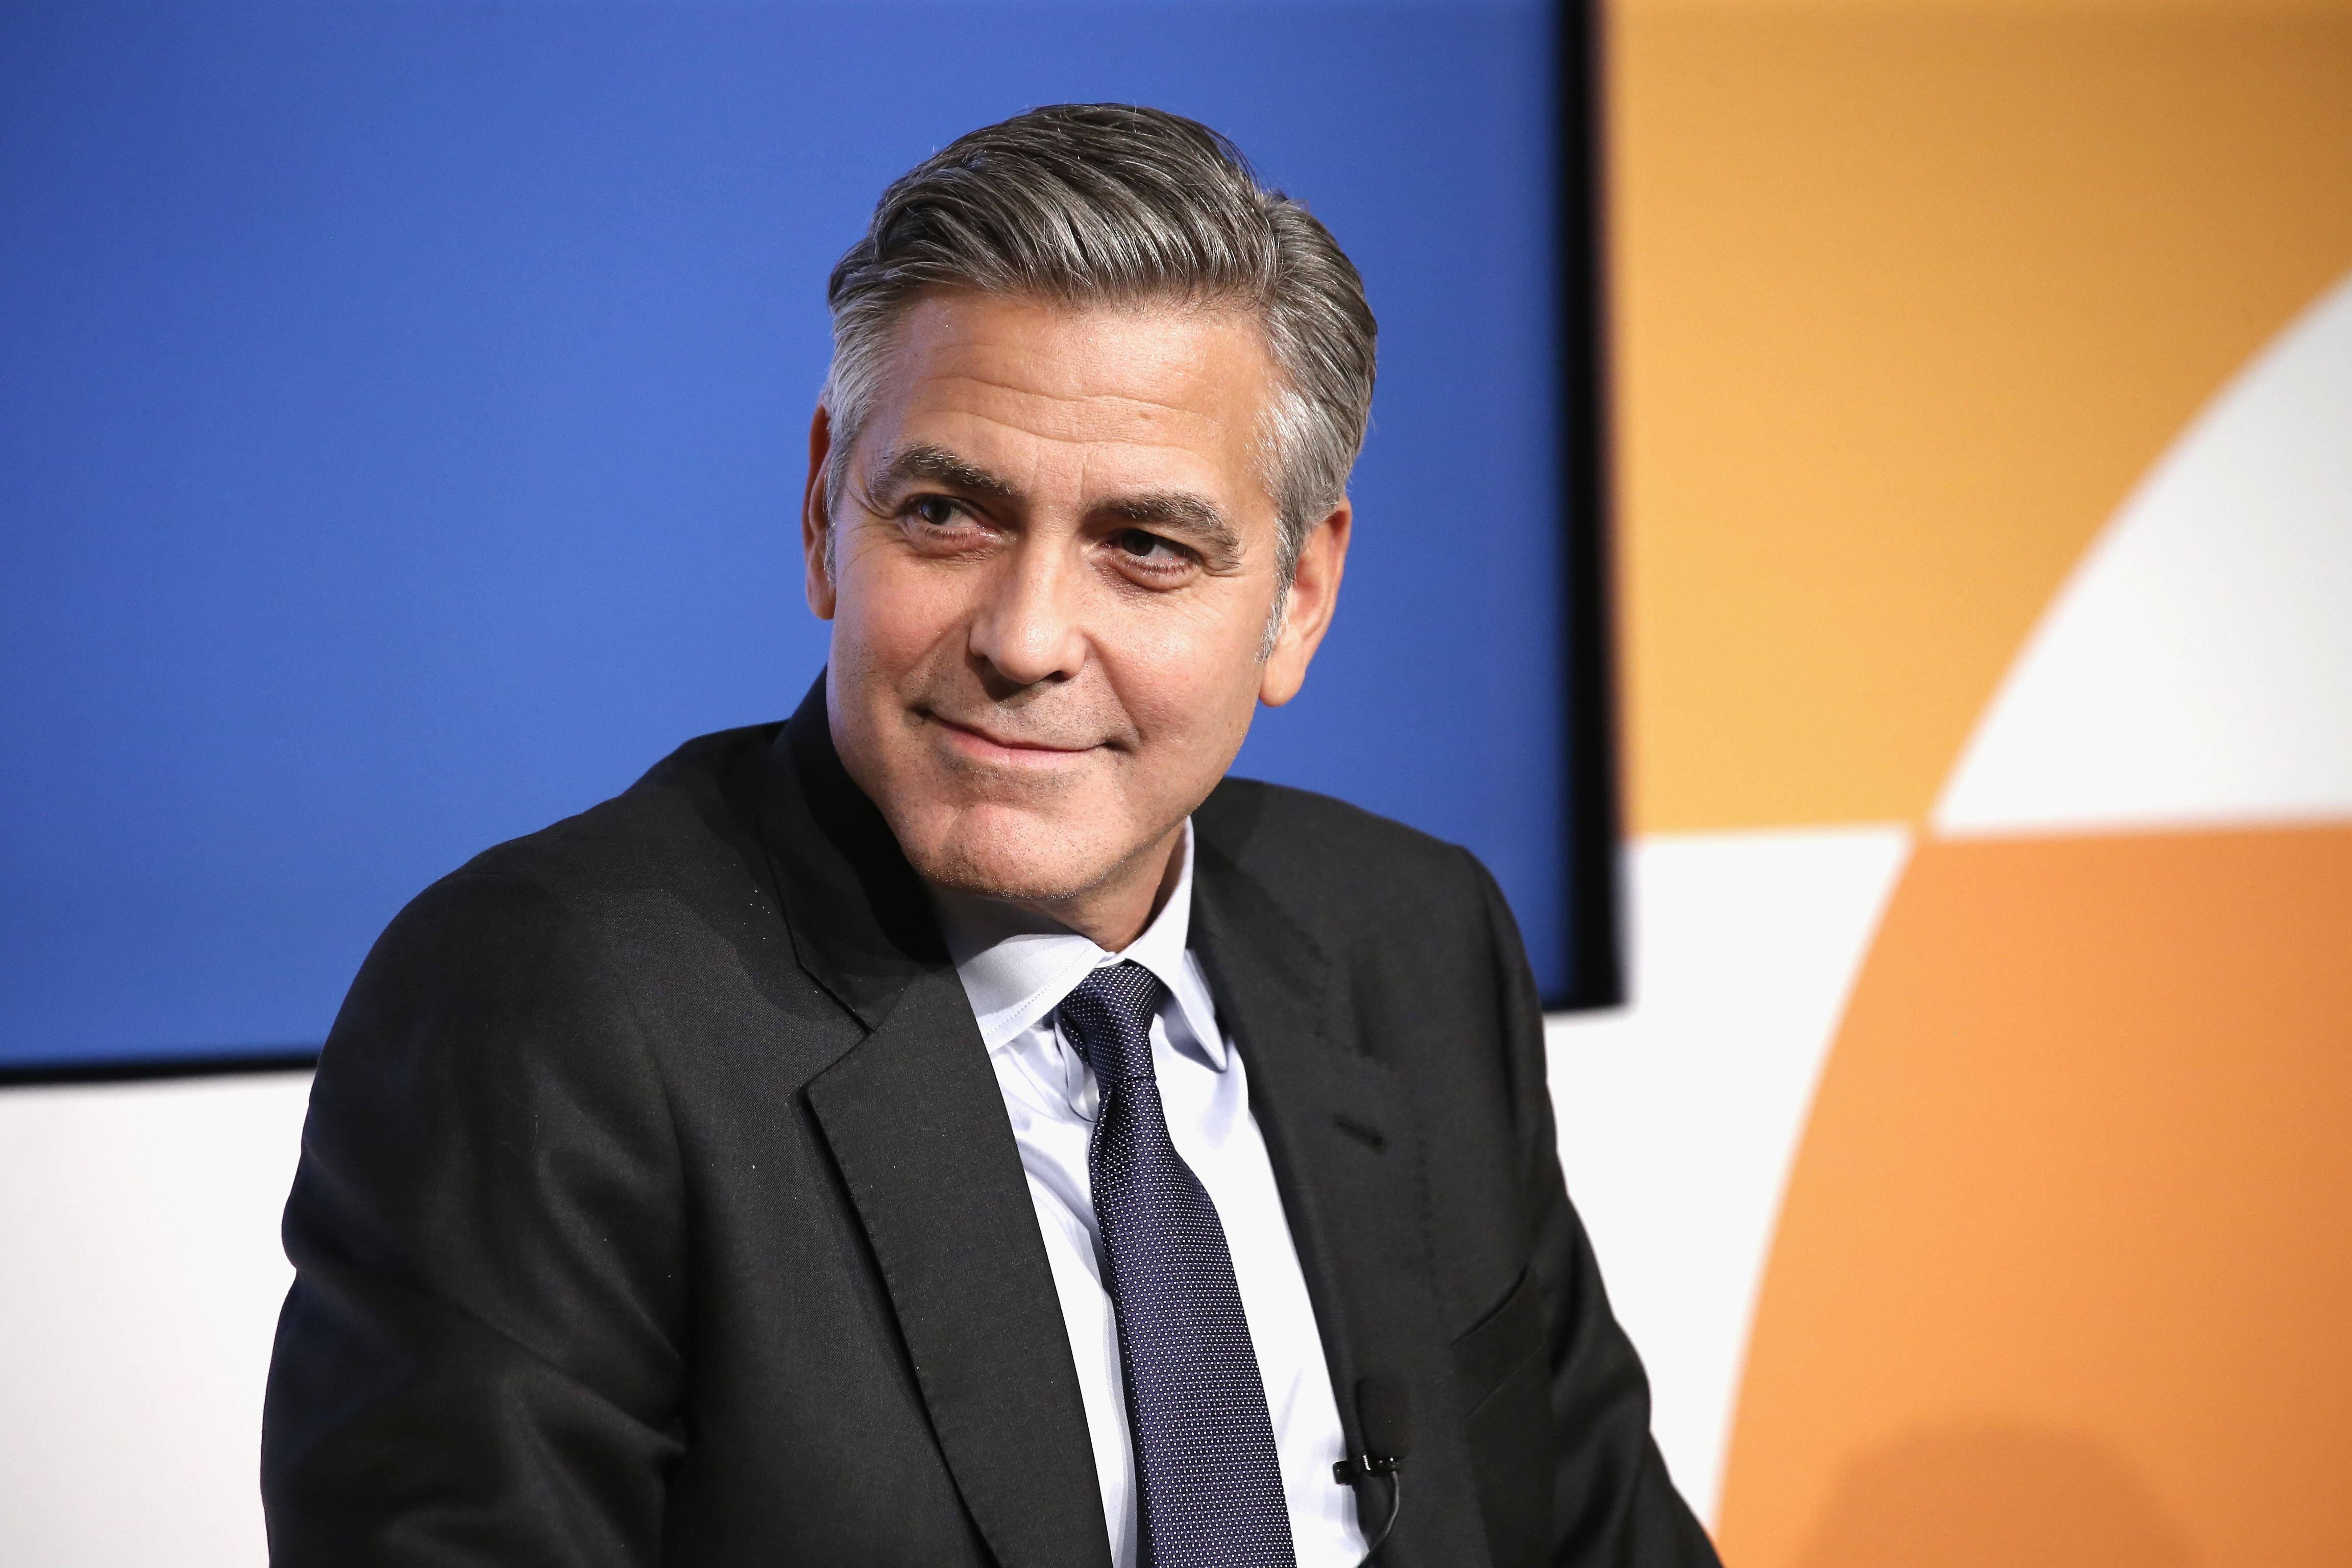 George Clooney during The 100 LIVES initiative on March 10, 2015 in New York City. | Source: Getty Images